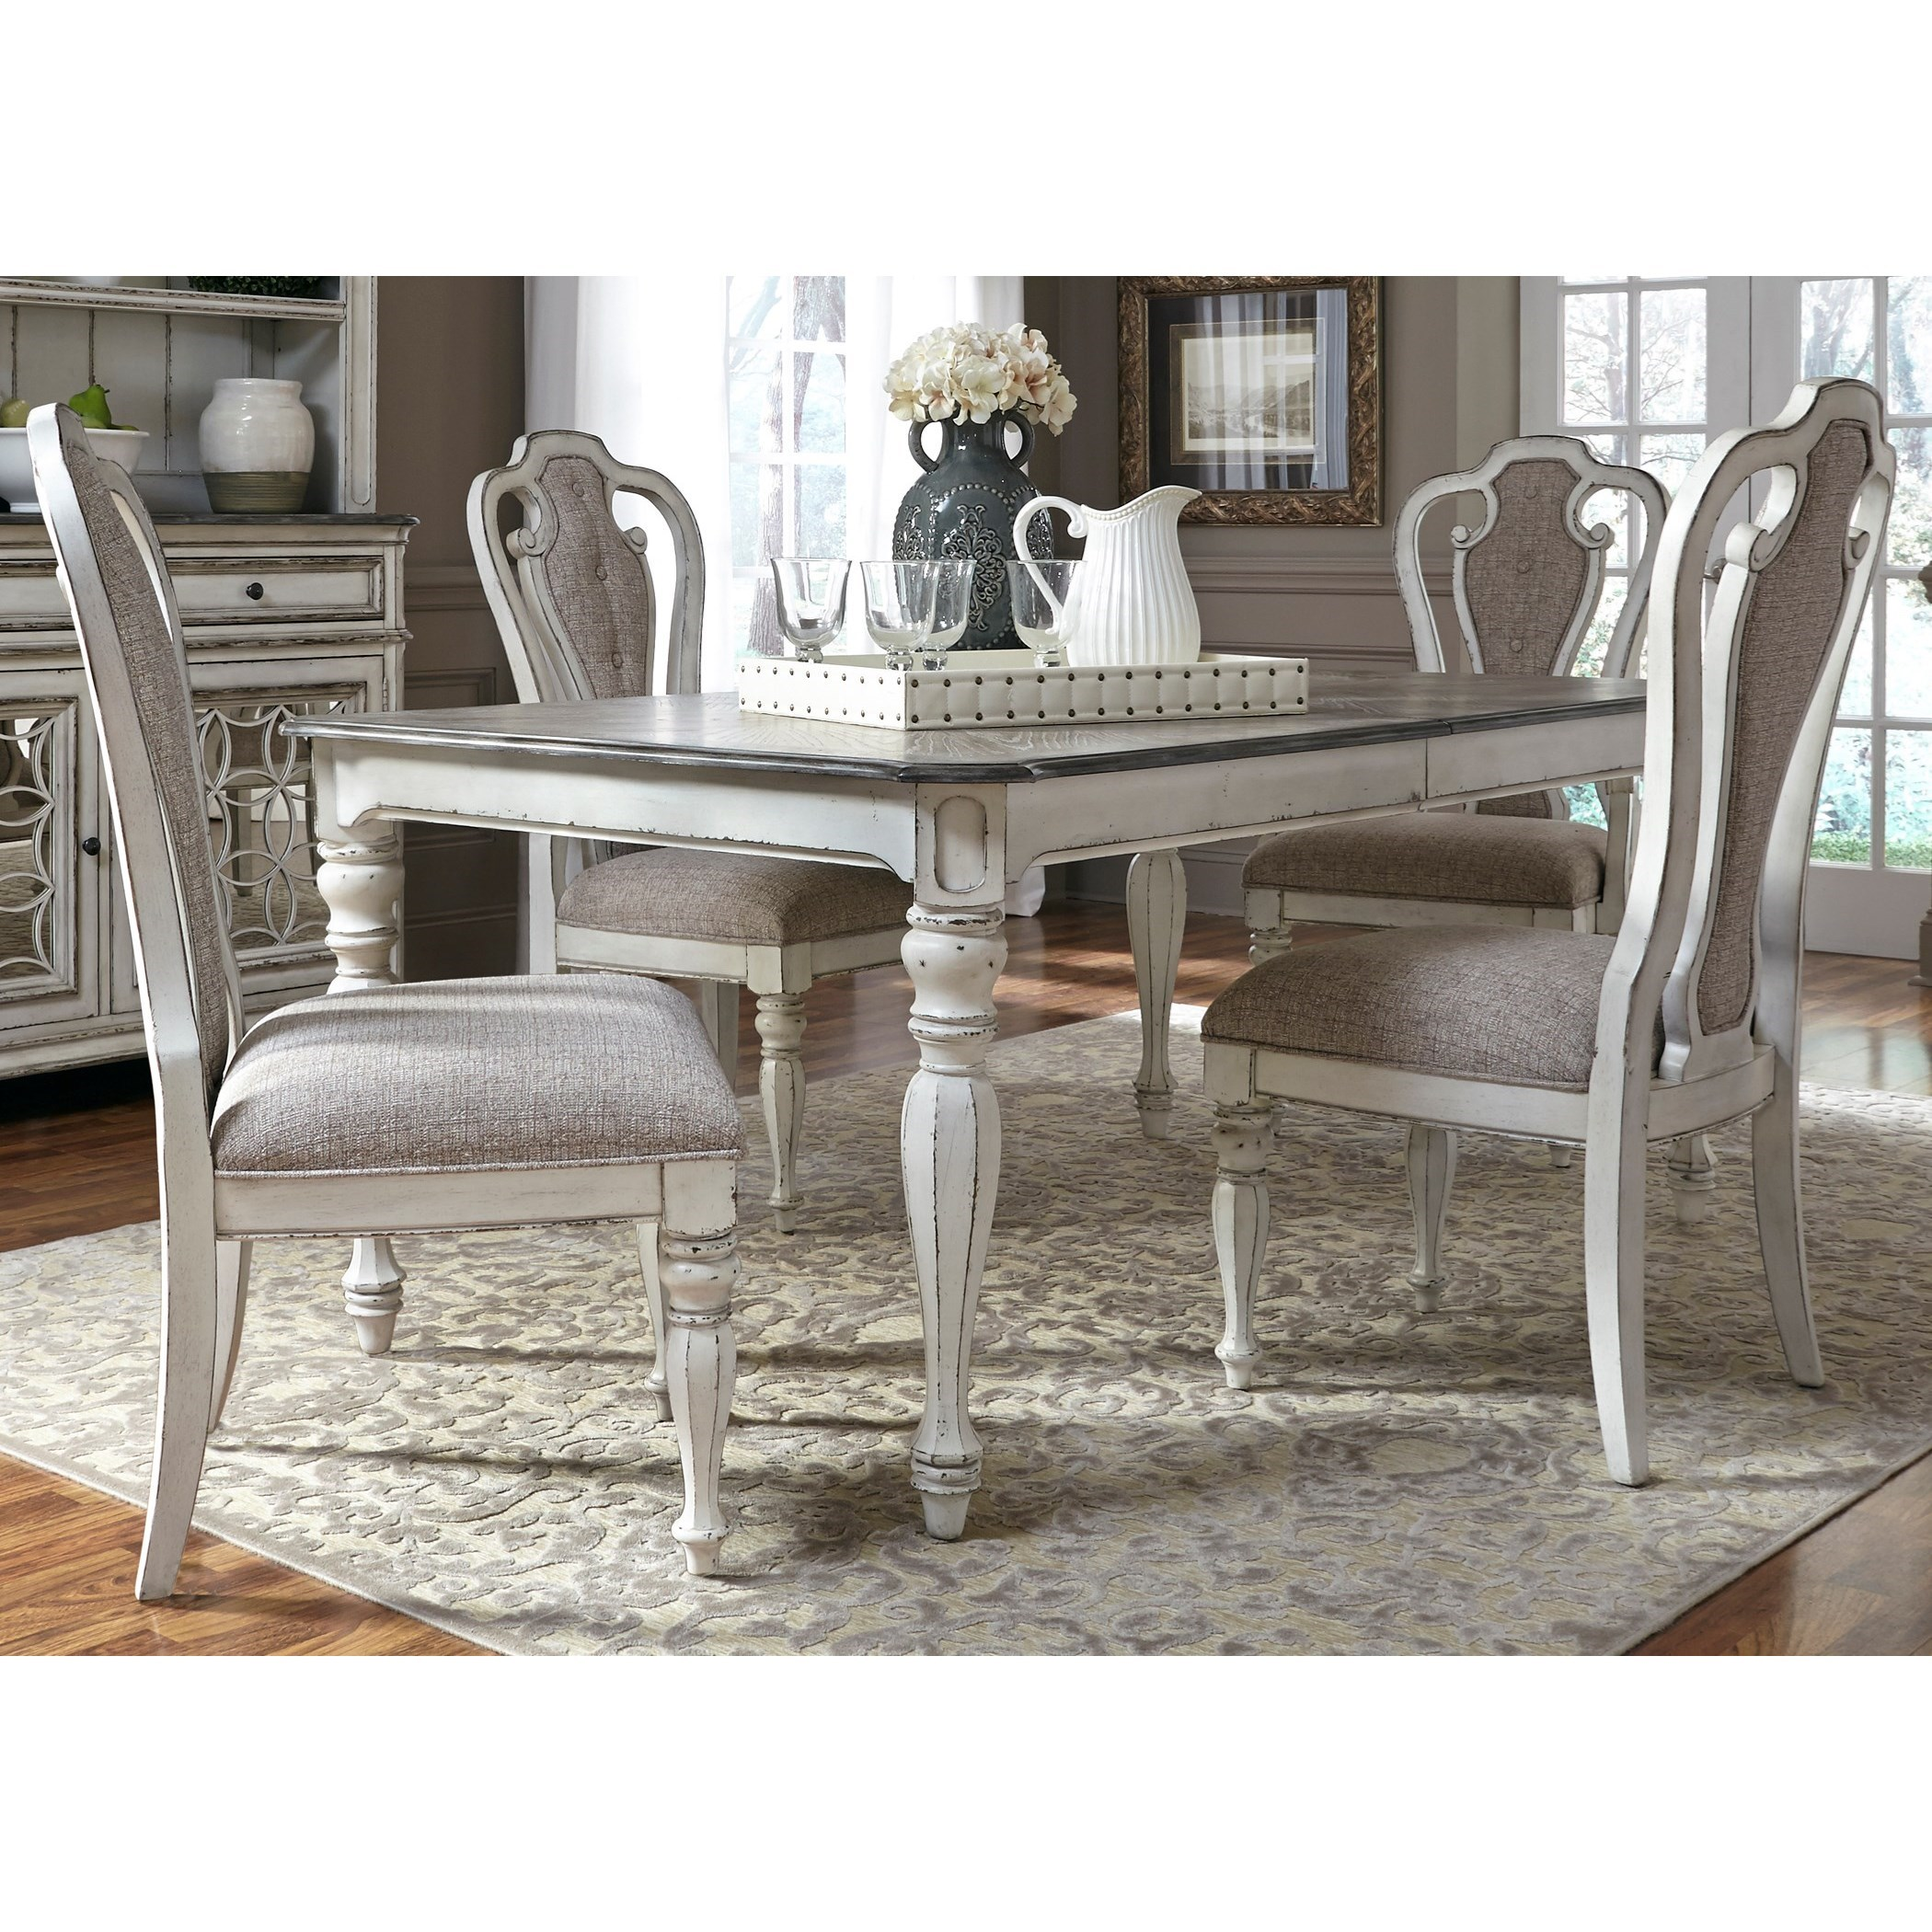 Liberty furniture magnolia manor dining 244 dr 5rls 5 for House kitchen set